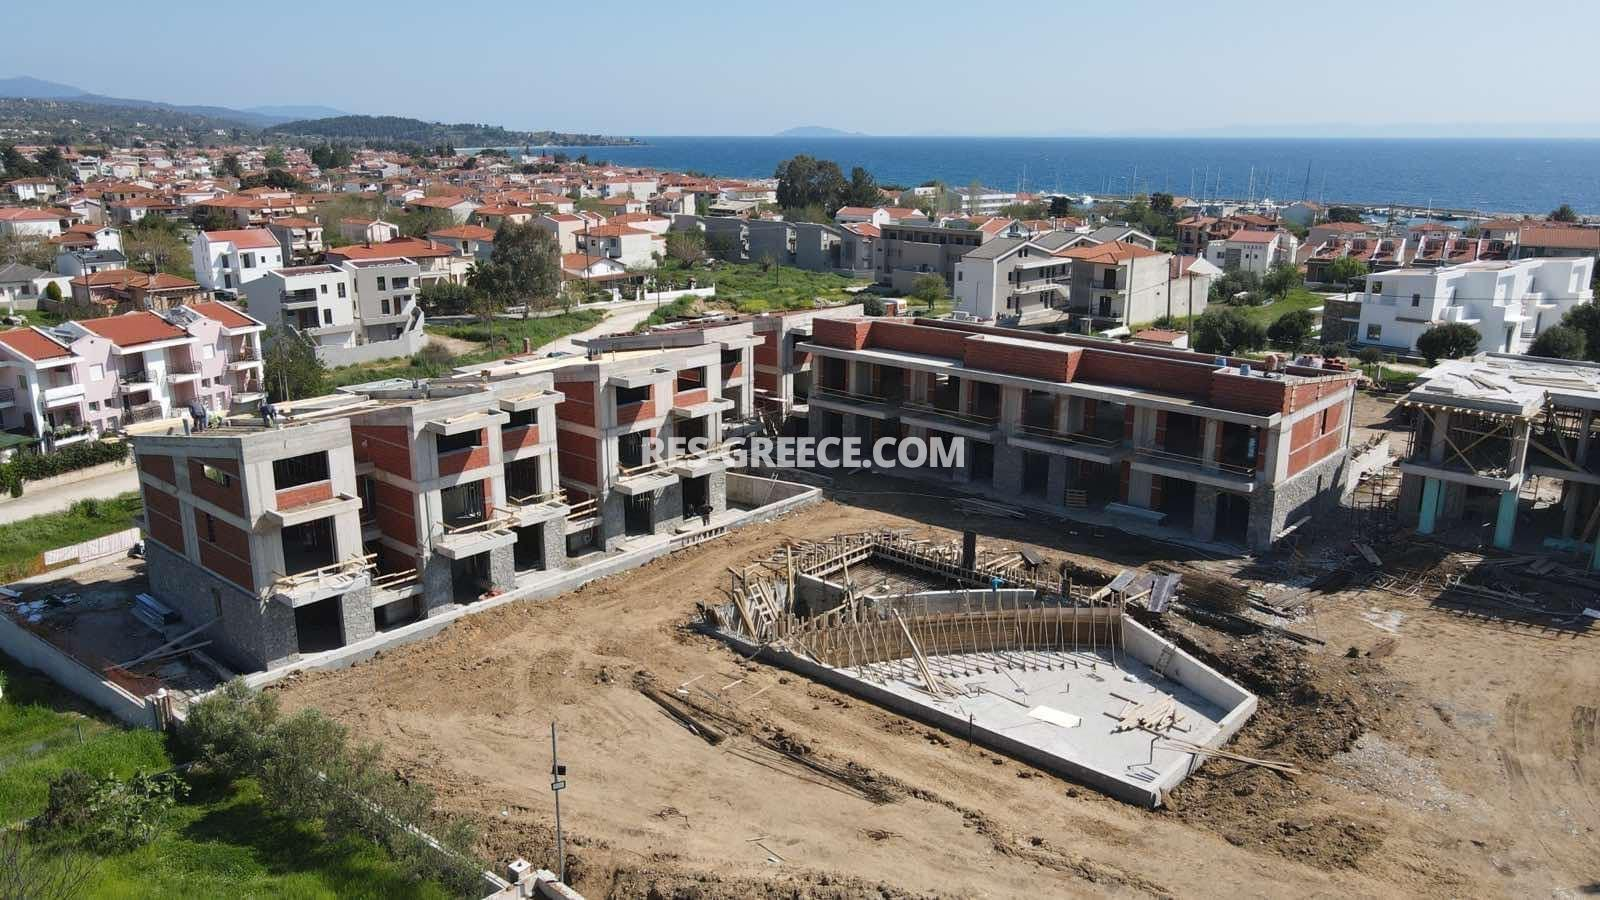 Anasa townhouses, Halkidiki-Sithonia, Greece - cottages in a new complex with the pool - Photo 19